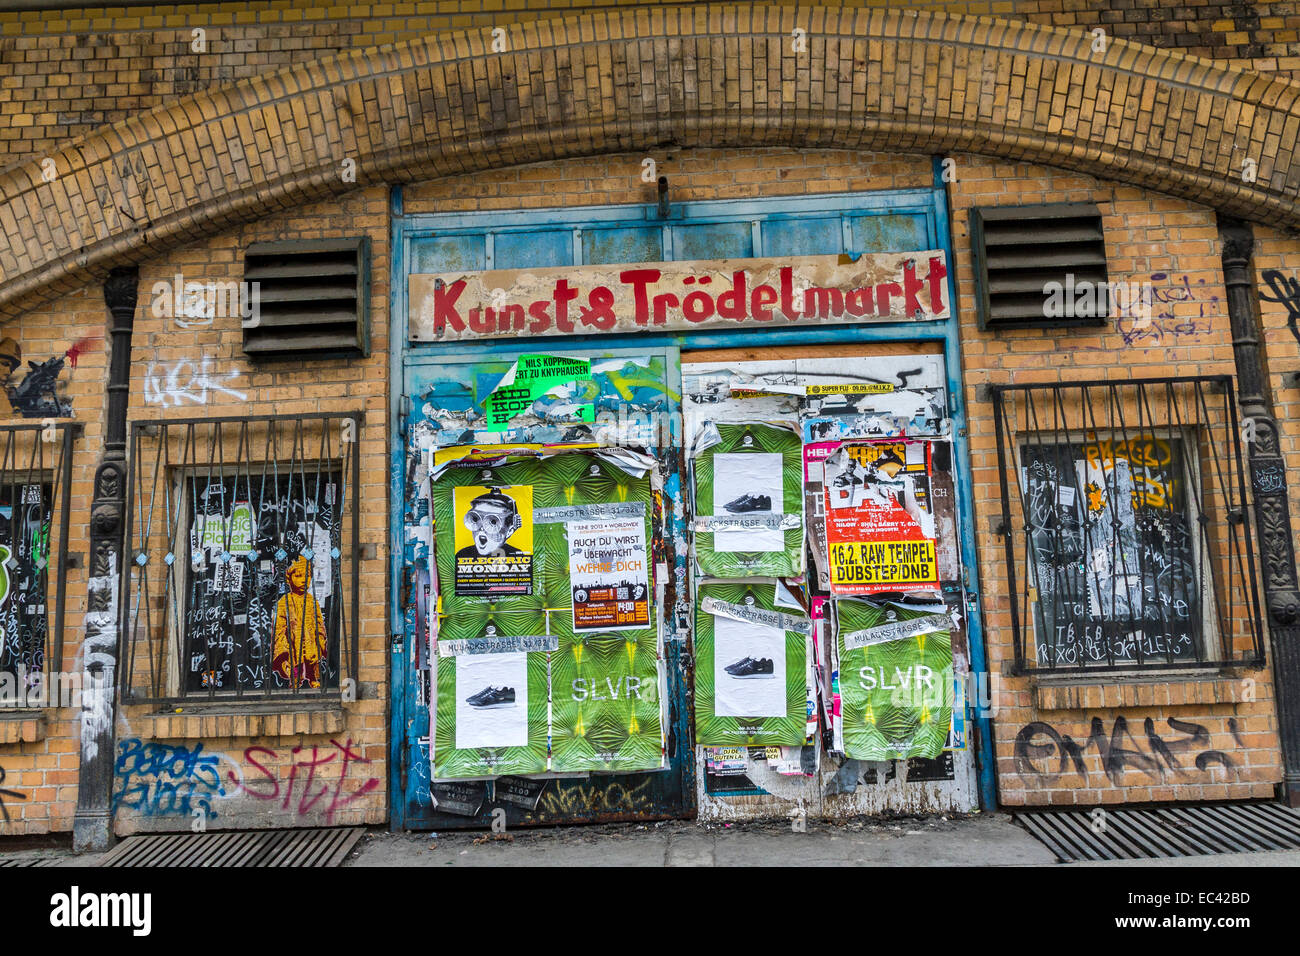 Stock photo with posters and graffiti spotted house wall in the center of berlin